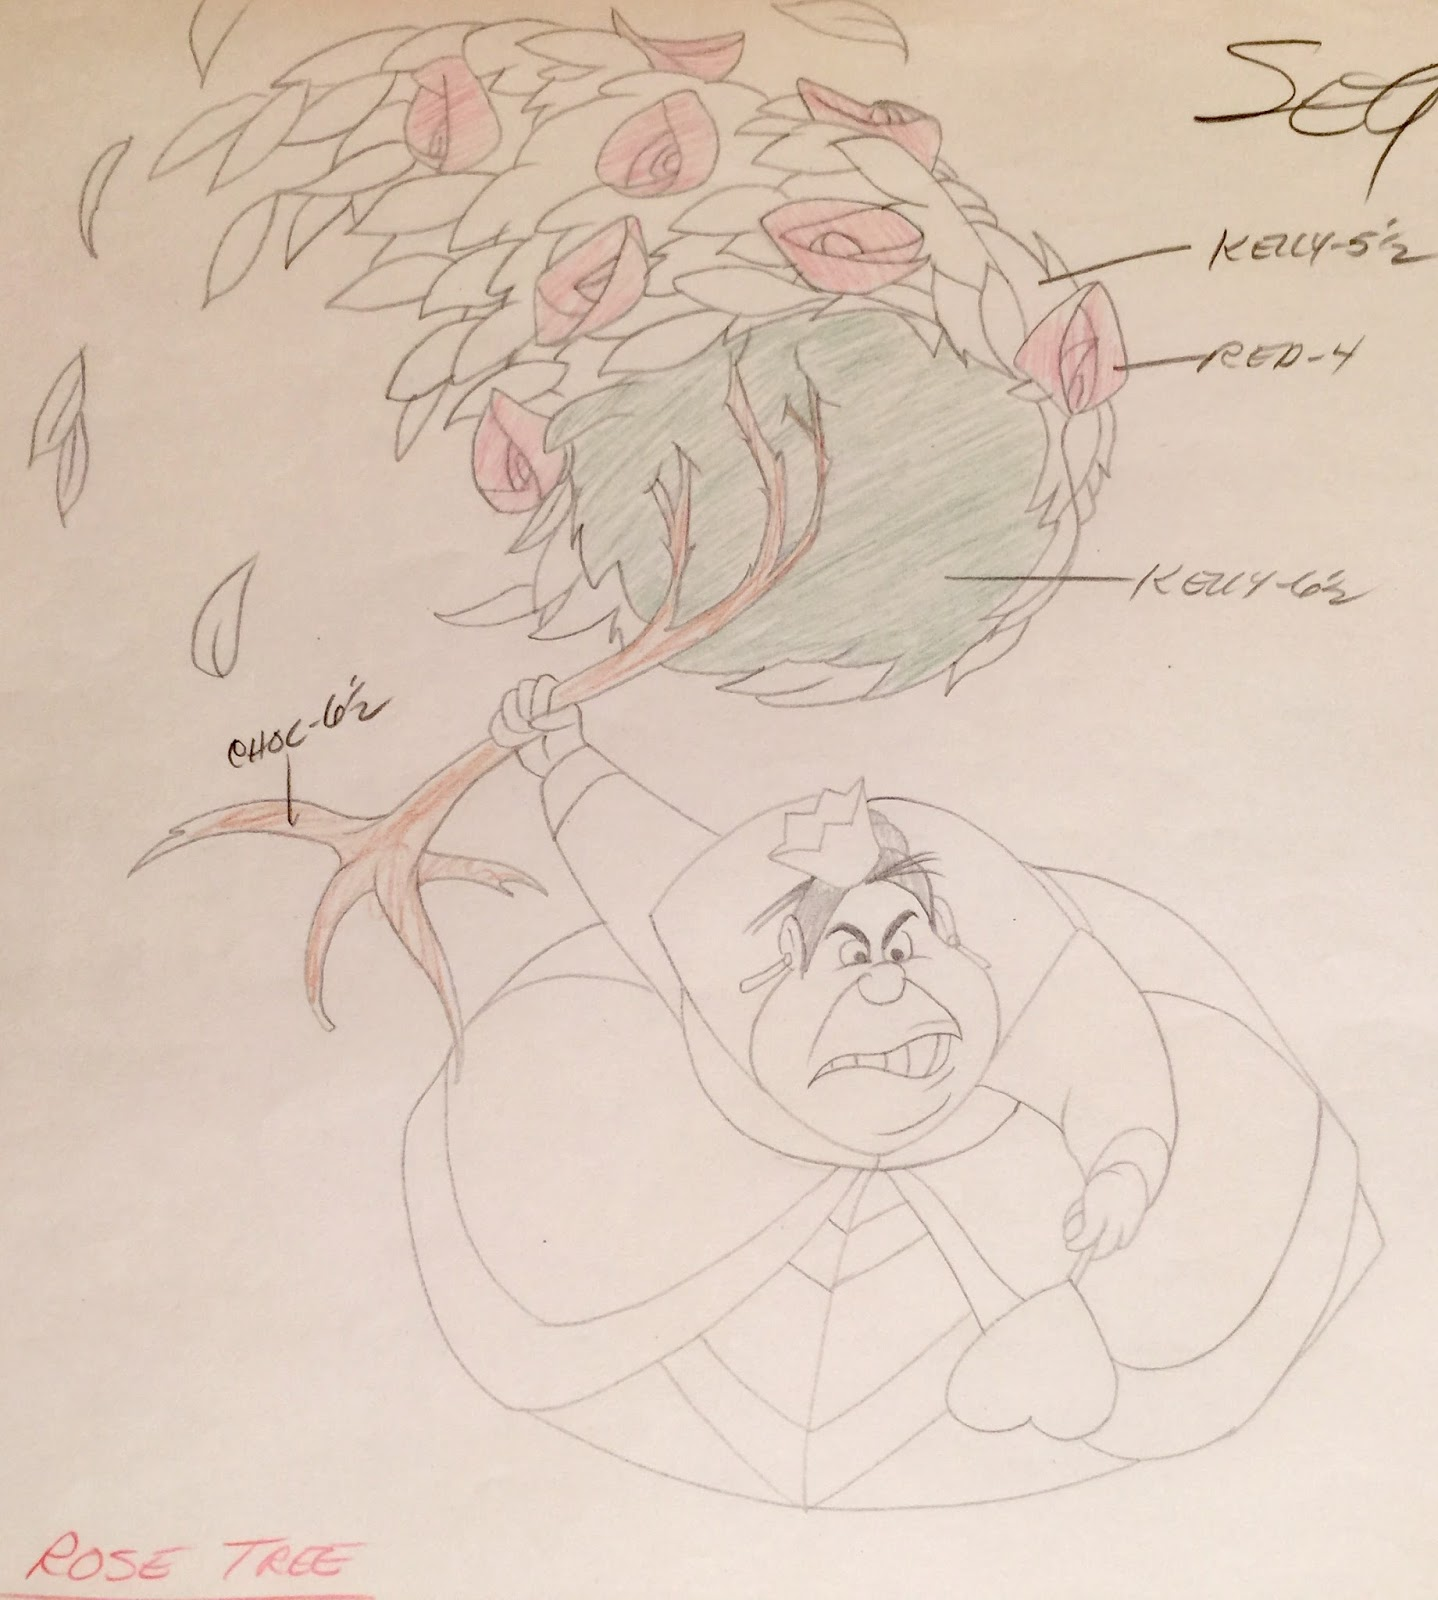 Drawn rose bush alice in wonderland card Of model Production the production